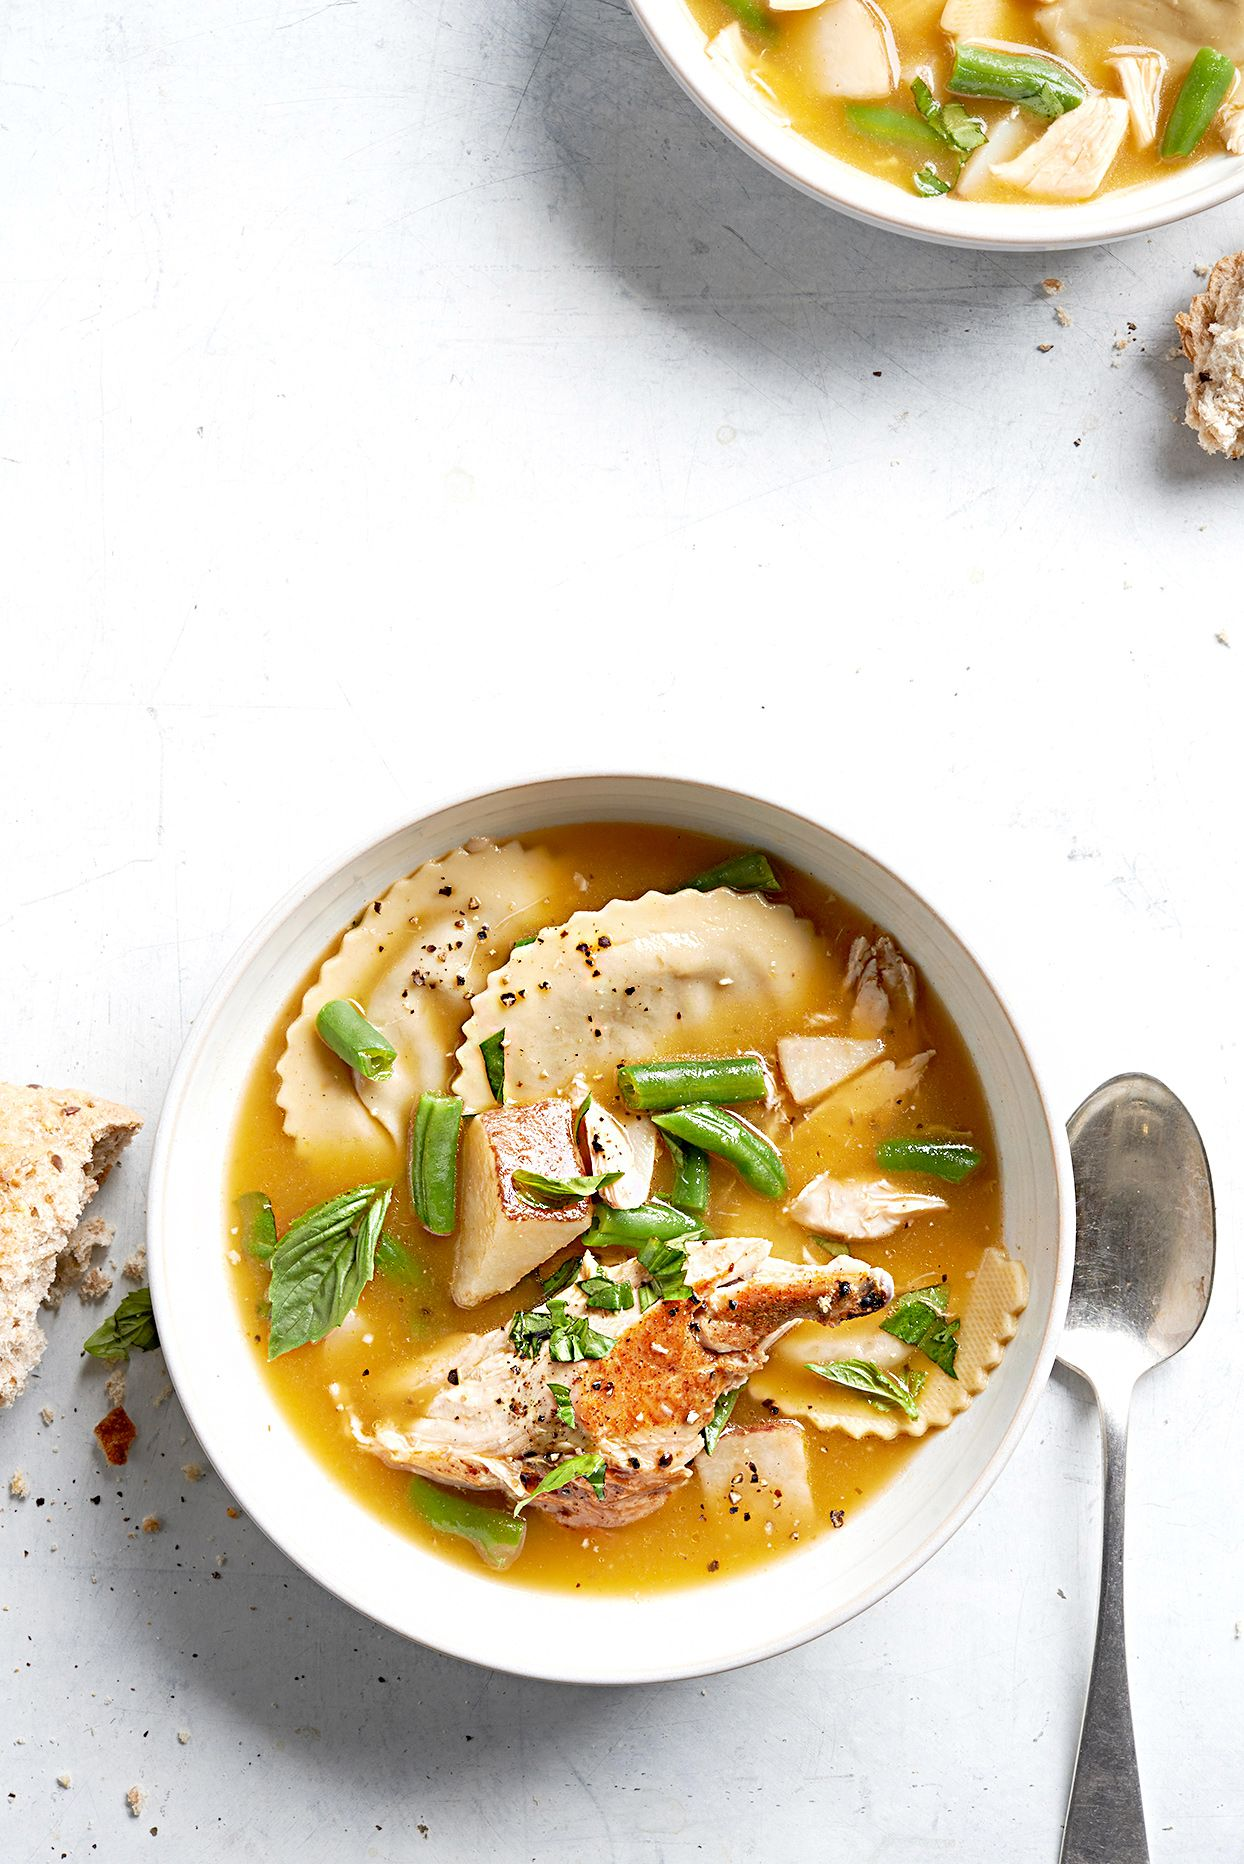 a54db95923e03ec9f5dc13e0ae0c61d6 - Roast Vegetable Soup Better Homes And Gardens